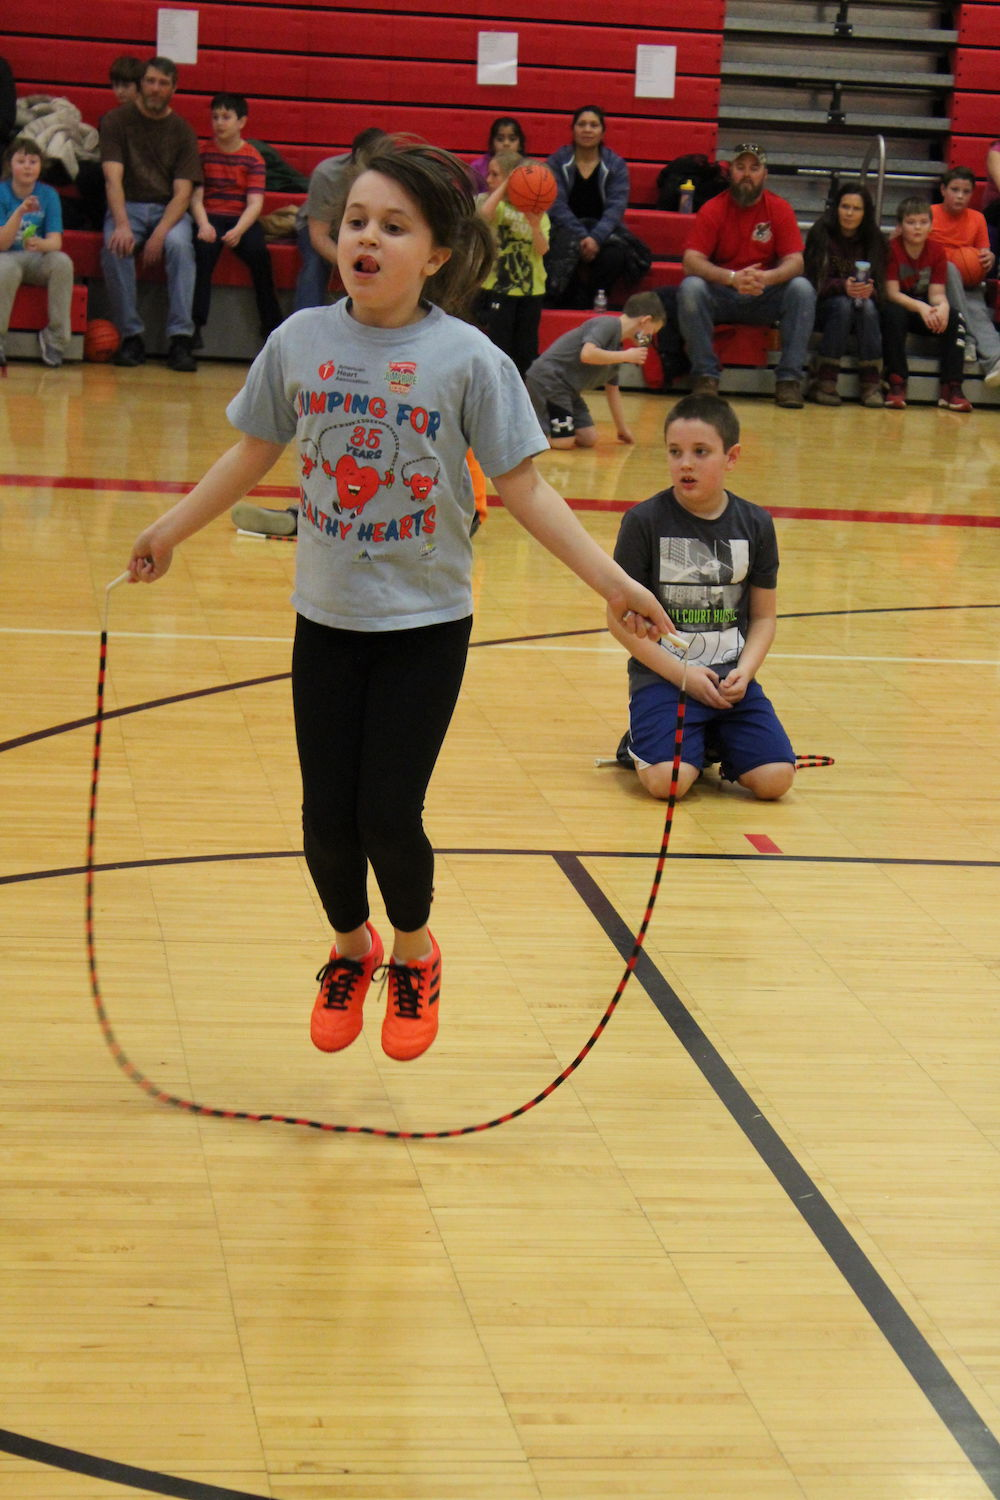 Hoops for Heart event at Holley Elementary